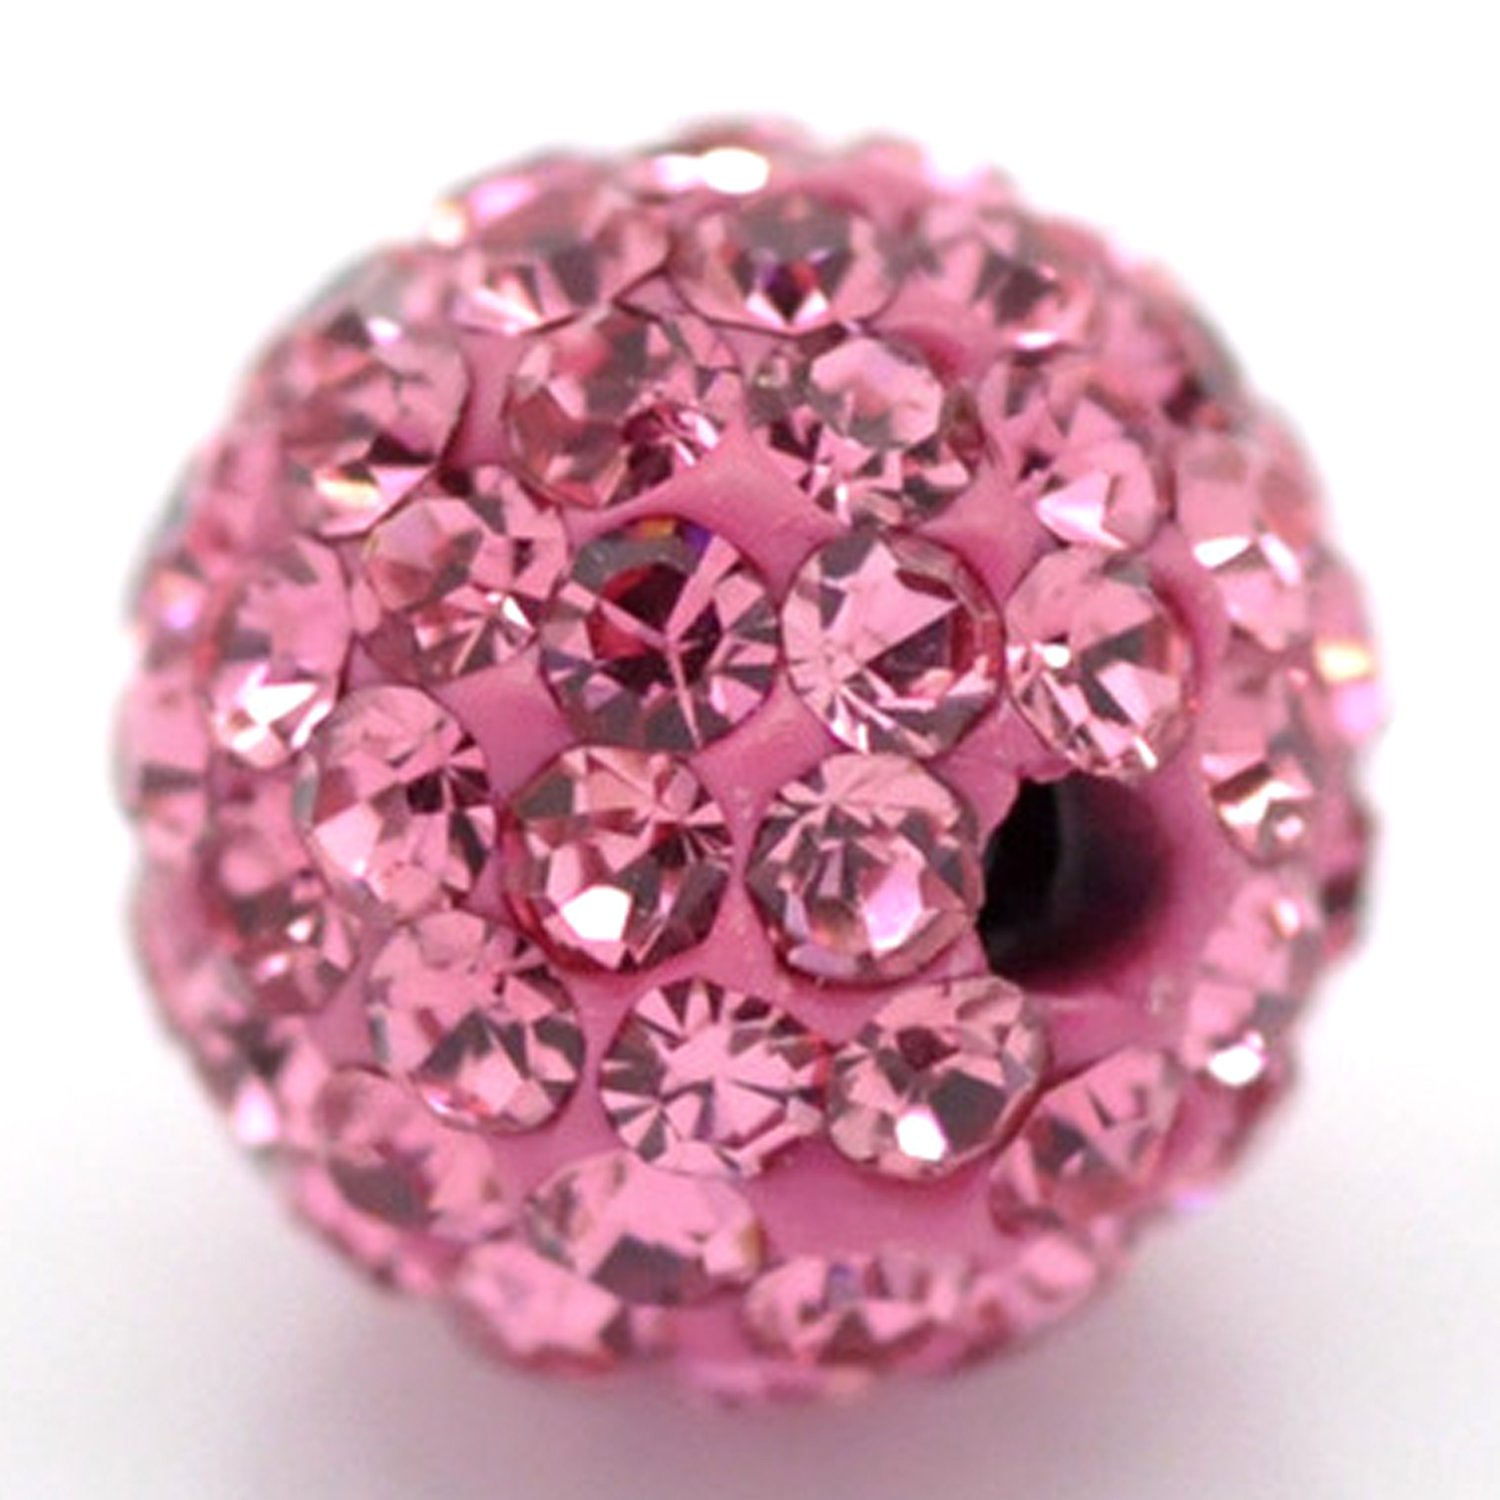 Amazing Disco Balls Clay Beads 12MM Rose Pave Czech Crystal Rhinestones fit Shamballa Premium Quality - 20pcs DIY By eART by eART   B00N9RTFW0